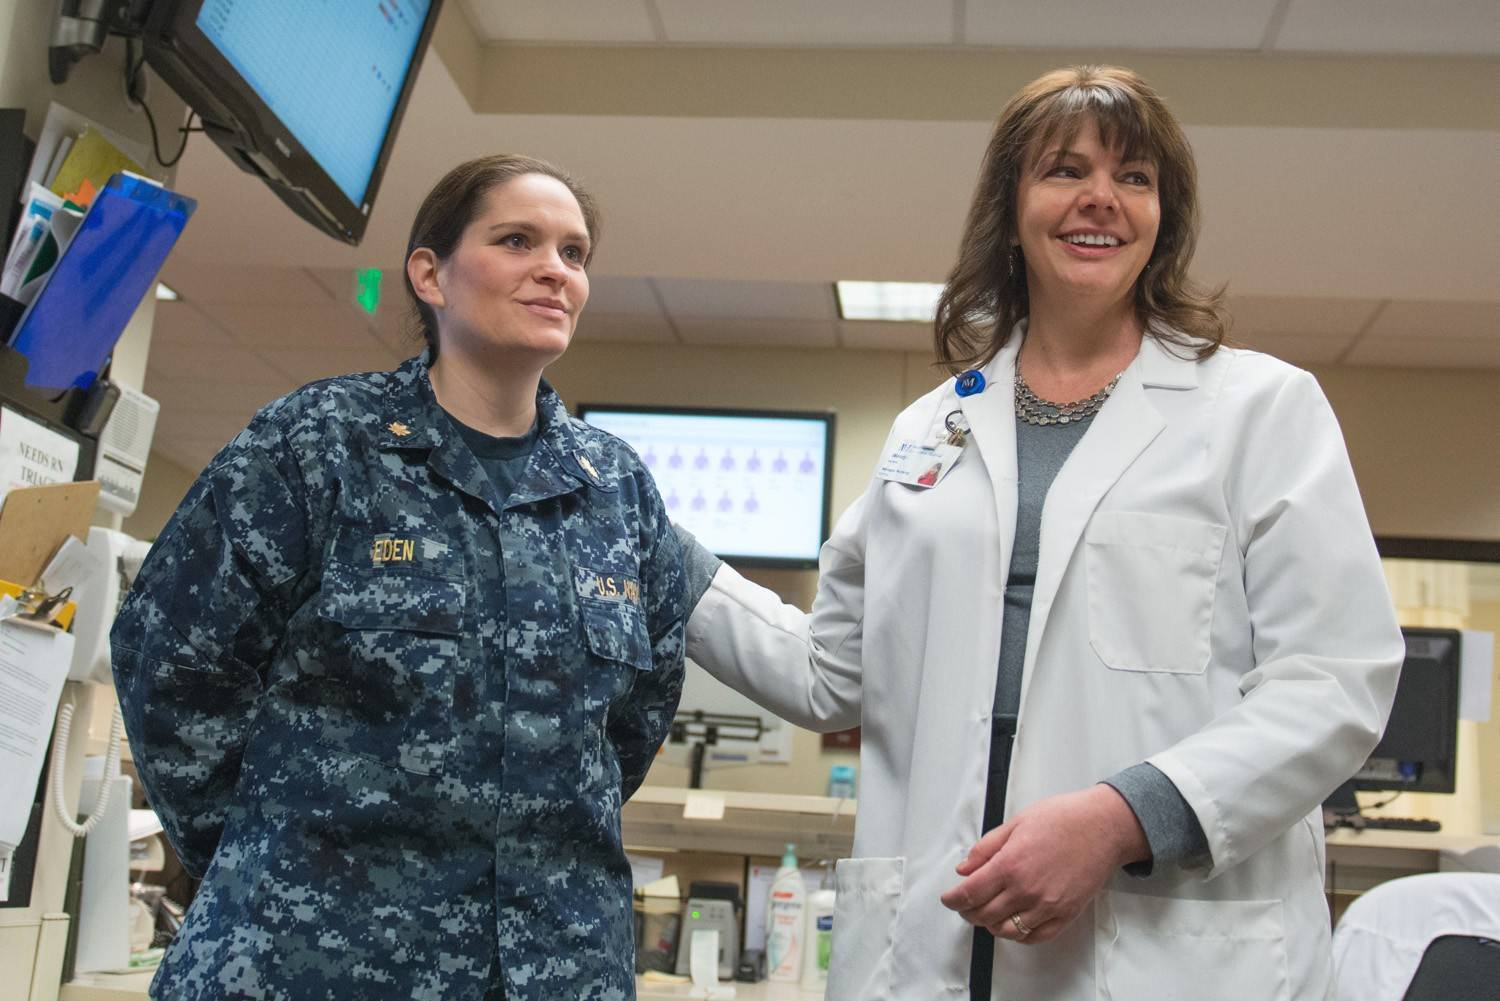 U.S. Naval Reserves Lt. Cmdr. Tabitha Eden, a registered nurse at Northwestern Grayslake Emergency Center, with her boss, Nursing Supervisor Wendy Callan. For her support of Eden's military service in the workplace, Callan recently received the Patriot Award.